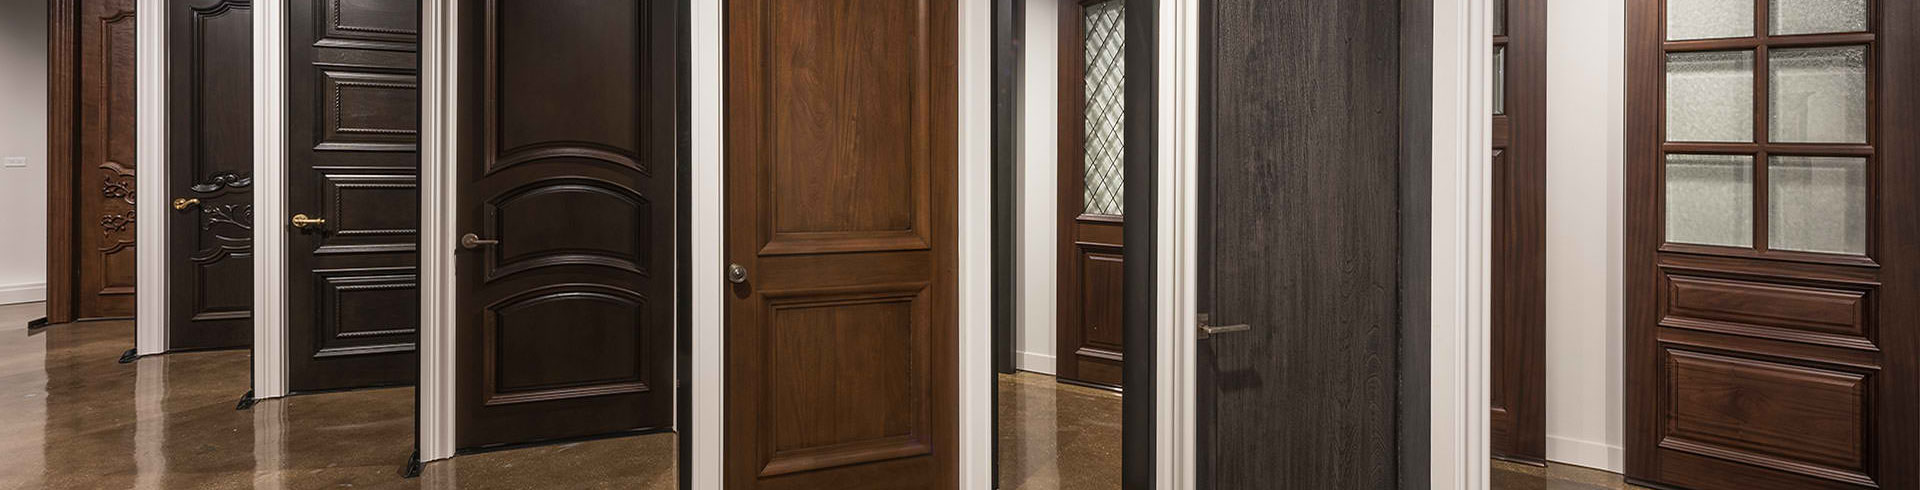 <h1>Internal Doors</h1><p>Internal Doors can be built in an endless variety of styles: featured timbers, painted and even incorporating Leadlight.  <a href='doors.html'>Learn More ></a></p>